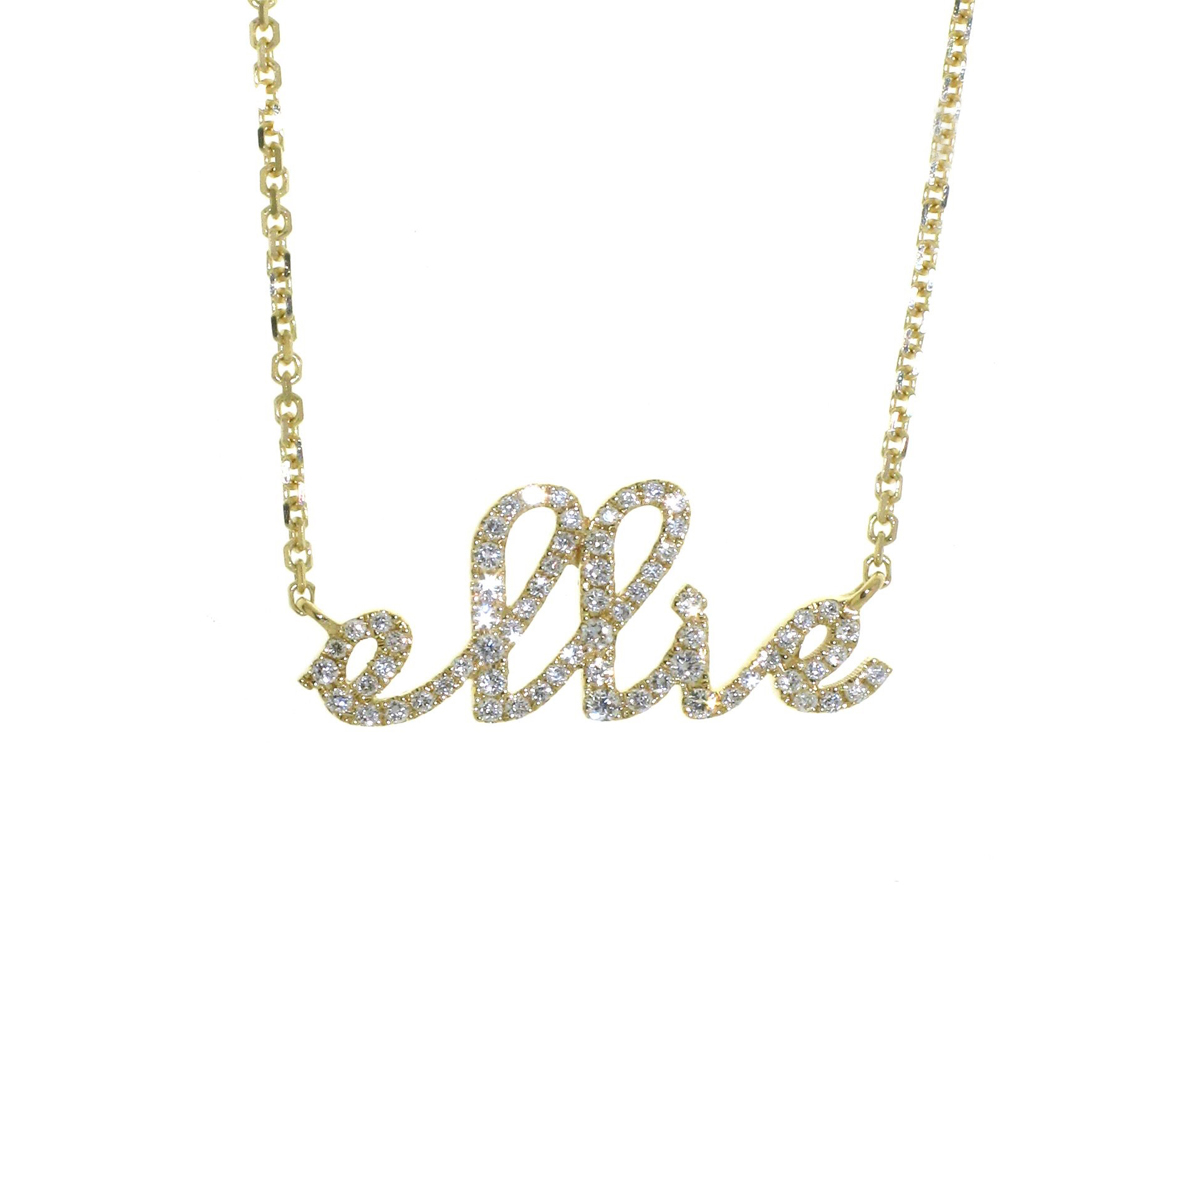 f31b9b488 Sue Gragg Personalized Diamond Necklace - The Tot